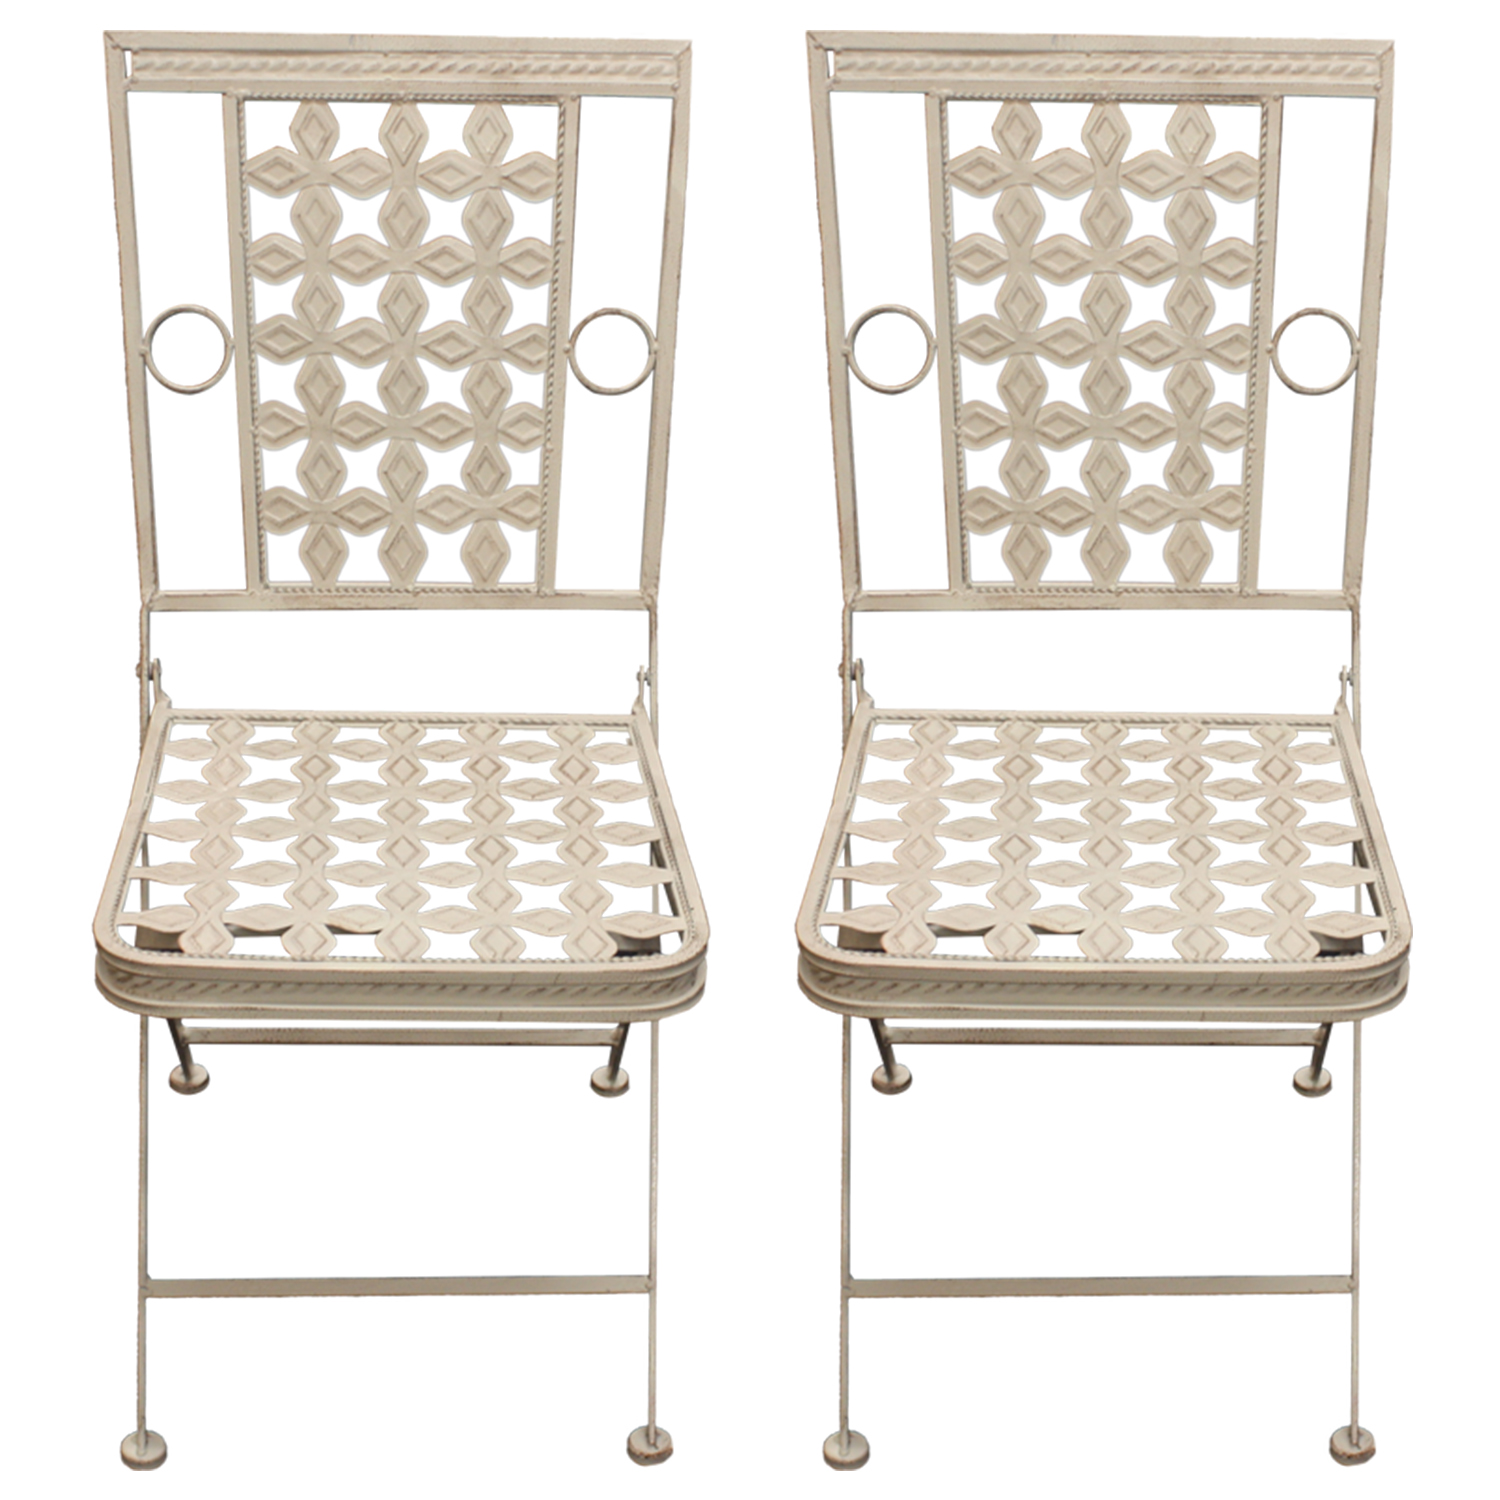 Woodside 2 X Square Metal Chairs Furniture Outdoor Value